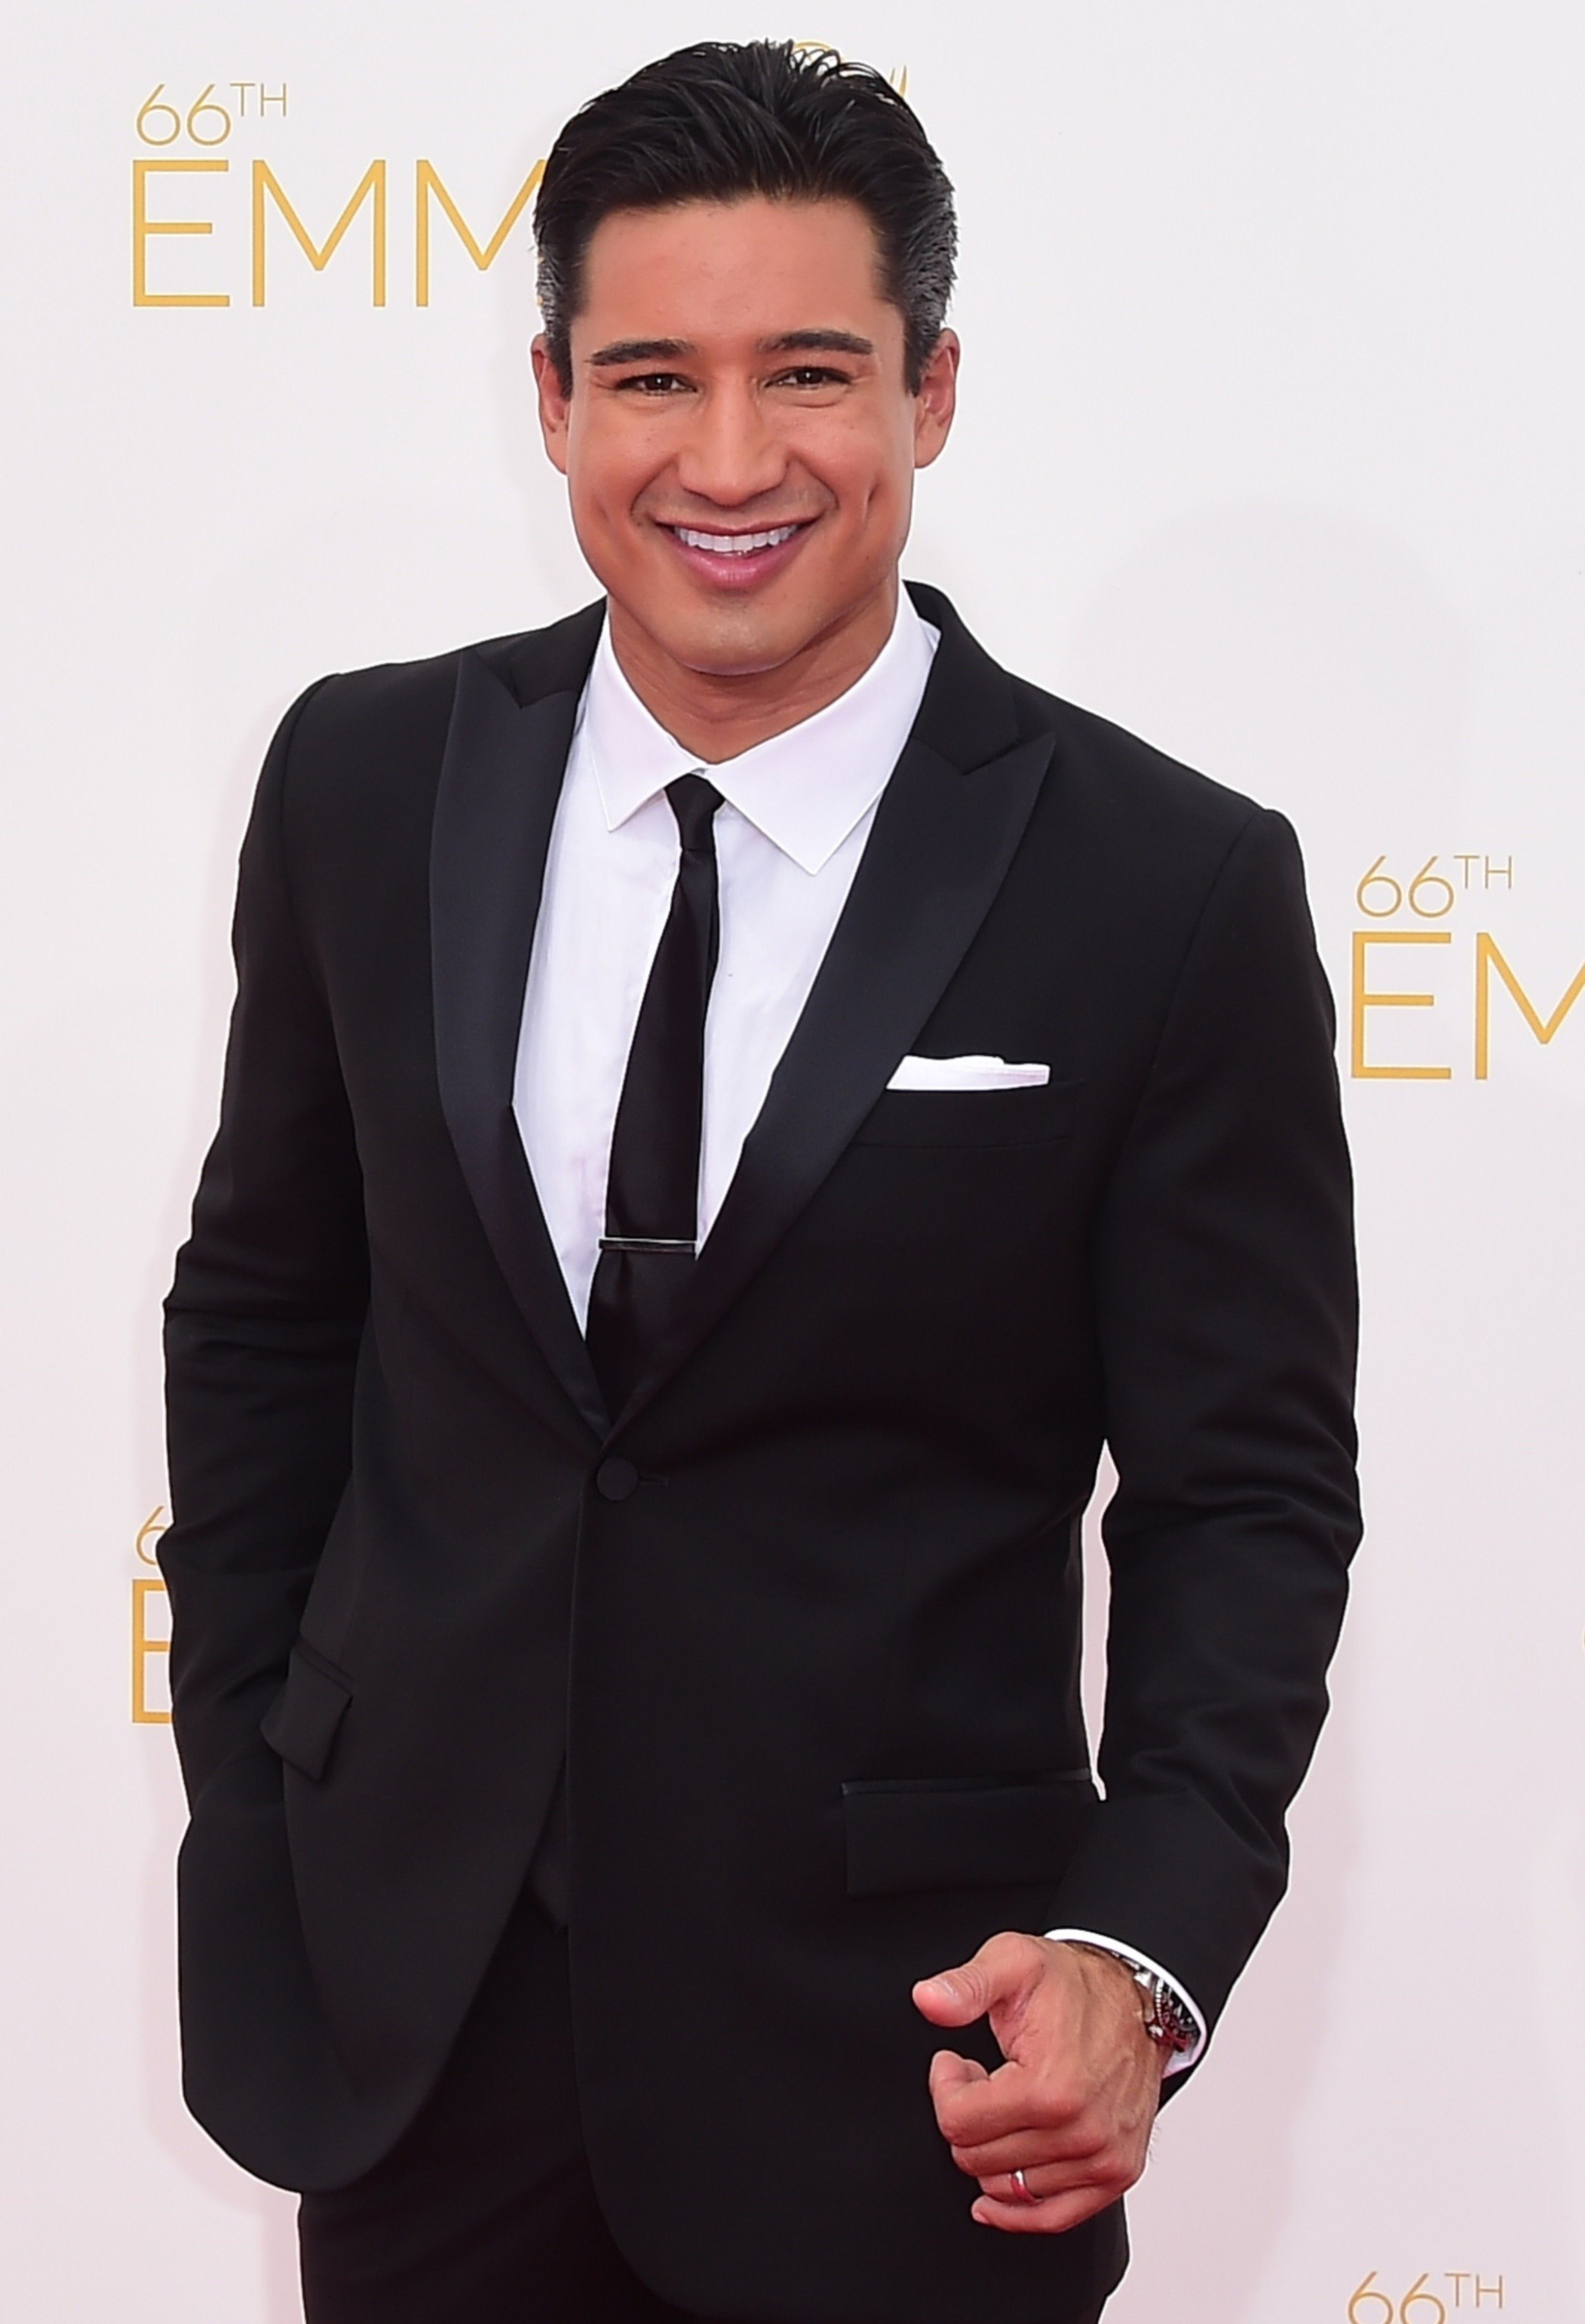 Mario Lopez  arrives on the red carpet for the 66th Emmy Awards, August 25, 2014 at Nokia Theatre in Los Angeles, California.